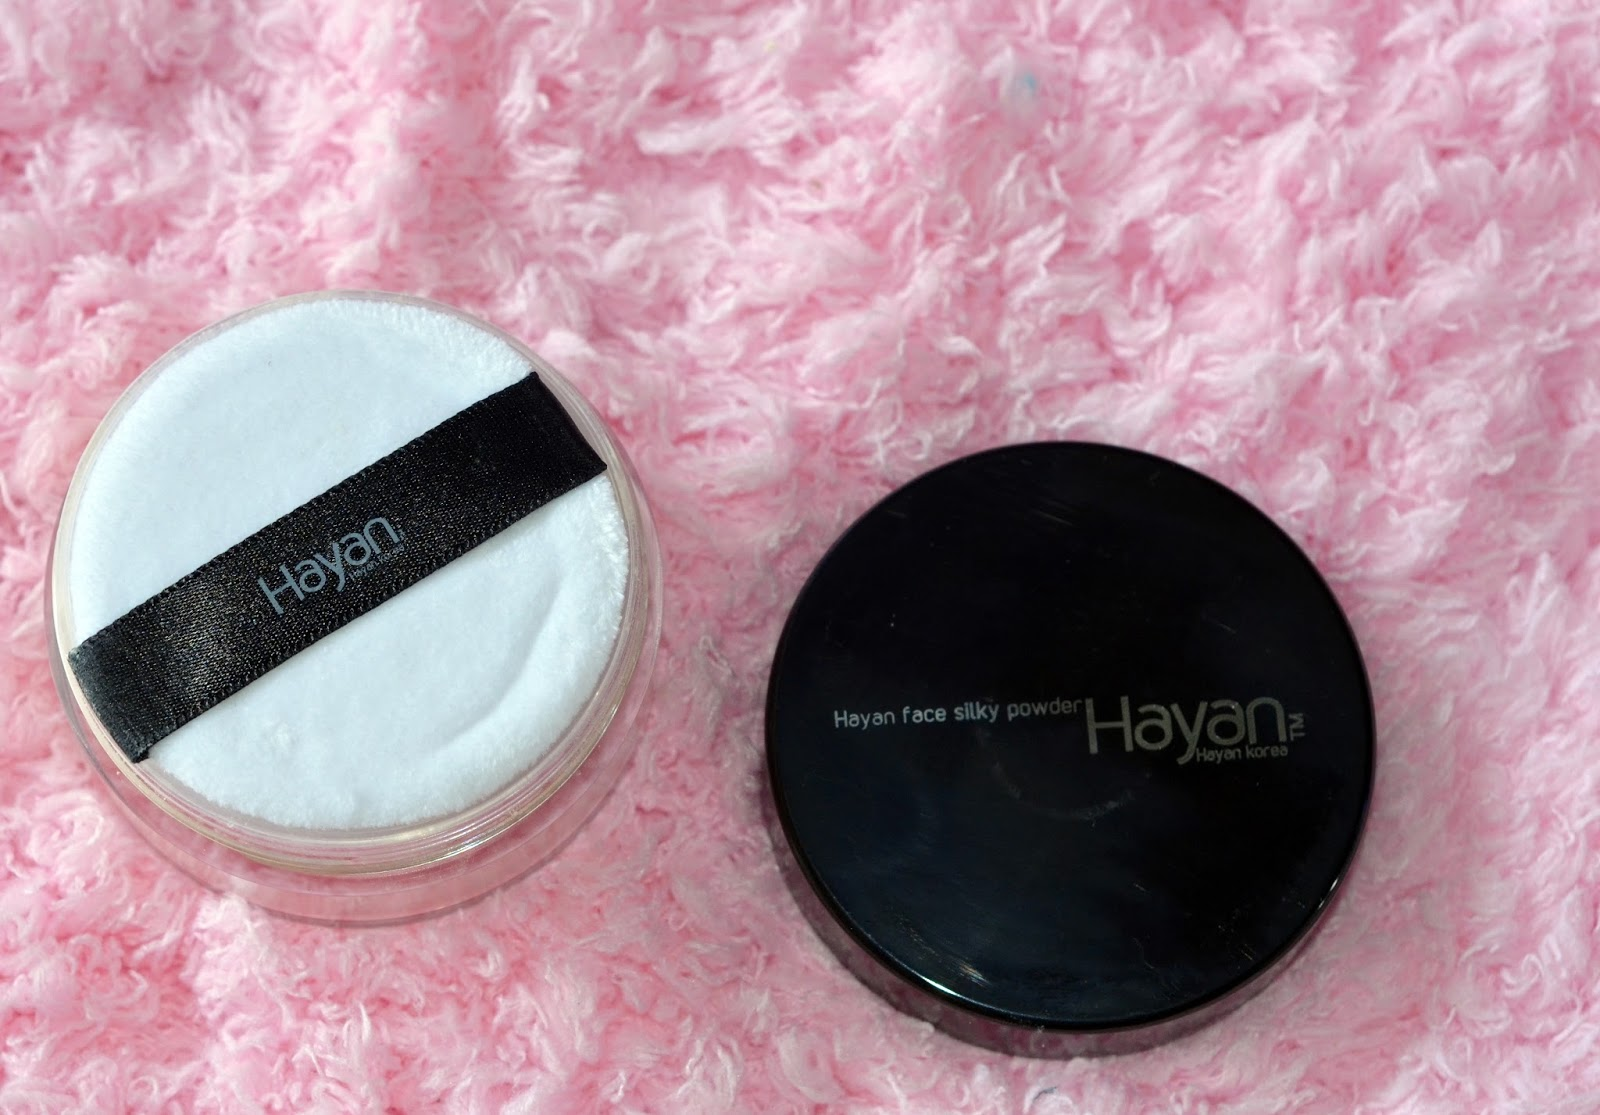 Hayan Korea Silky Face Powder review